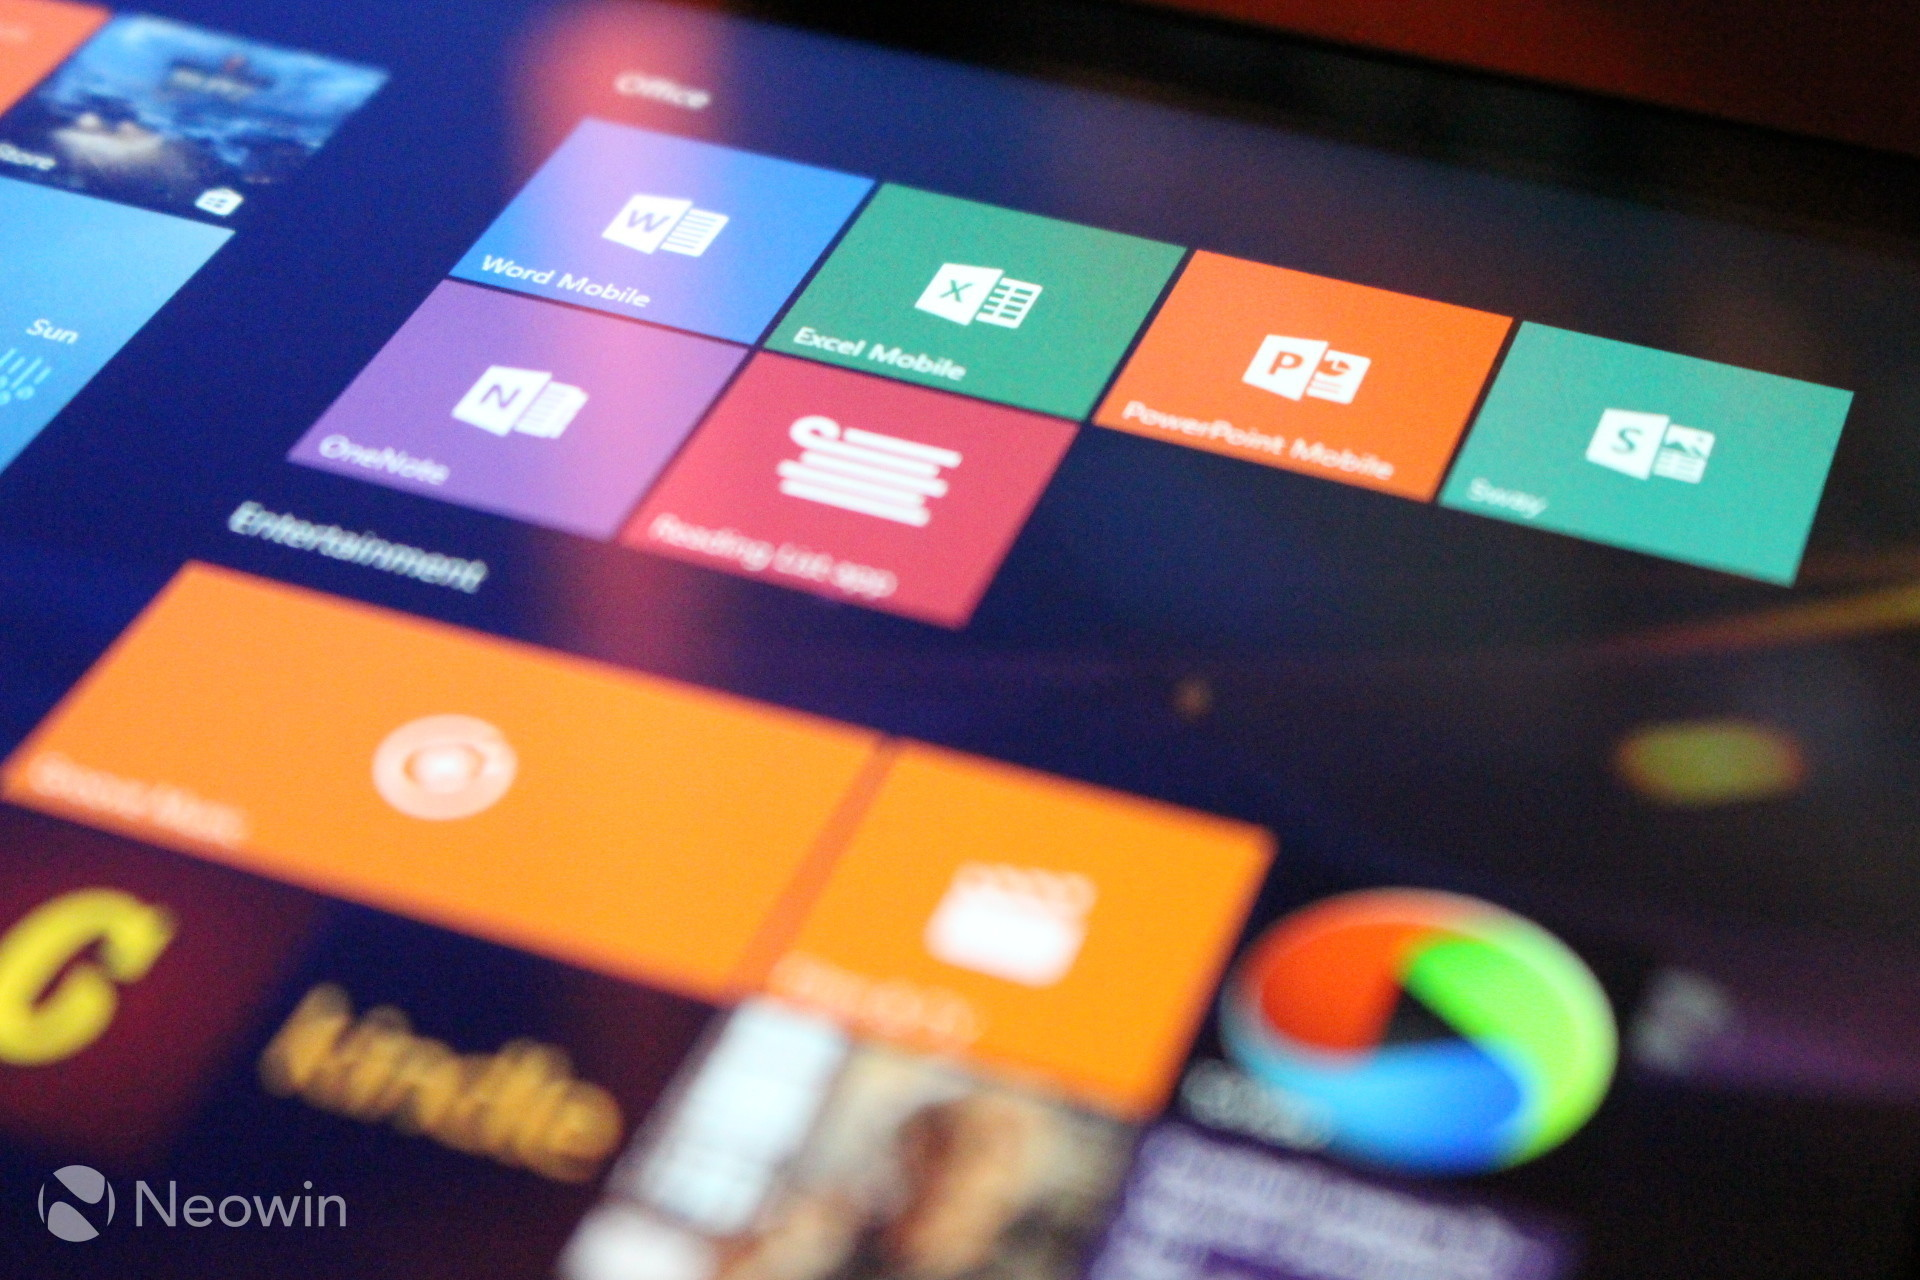 No surprise, but the Office Mobile apps for Windows 10 are